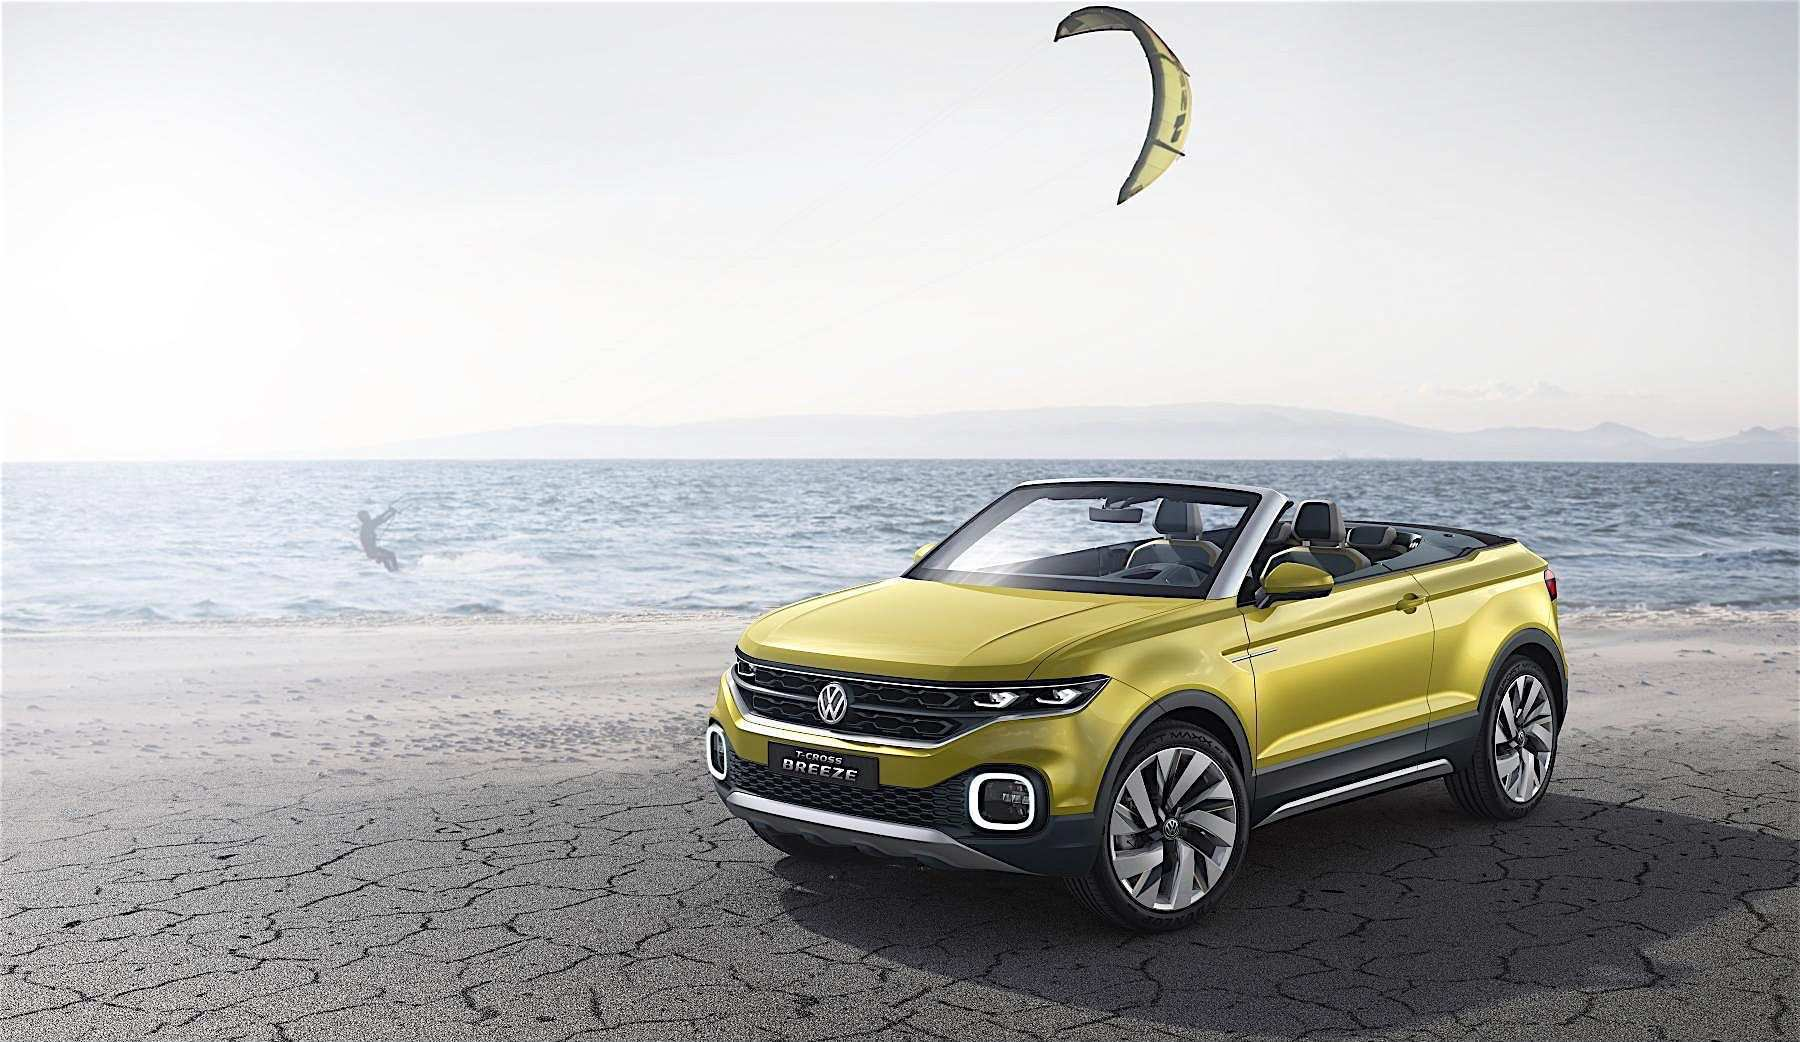 62 New Volkswagen T Roc Cabrio 2020 Picture